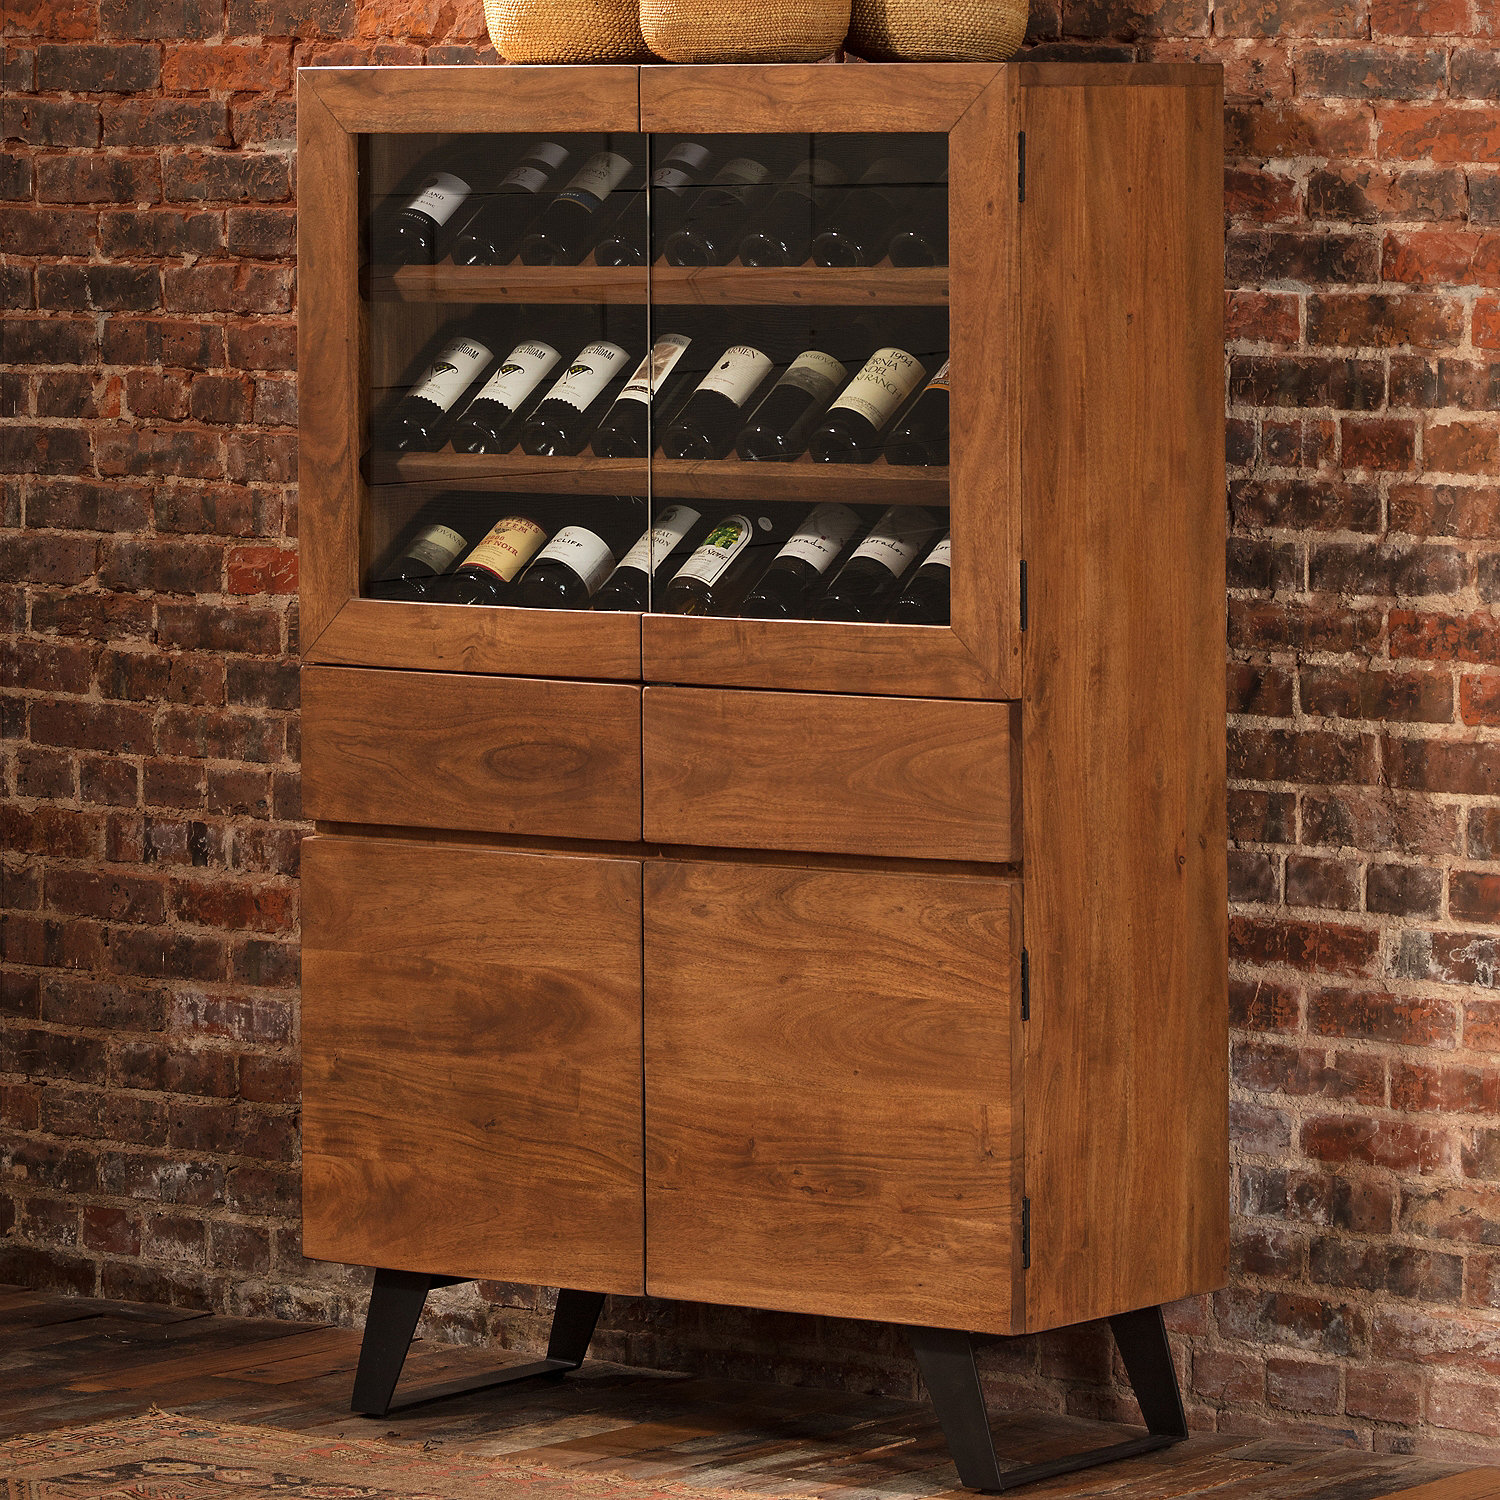 storage homecrest cabinetry cabinet interiors wine homwinexmfvna products